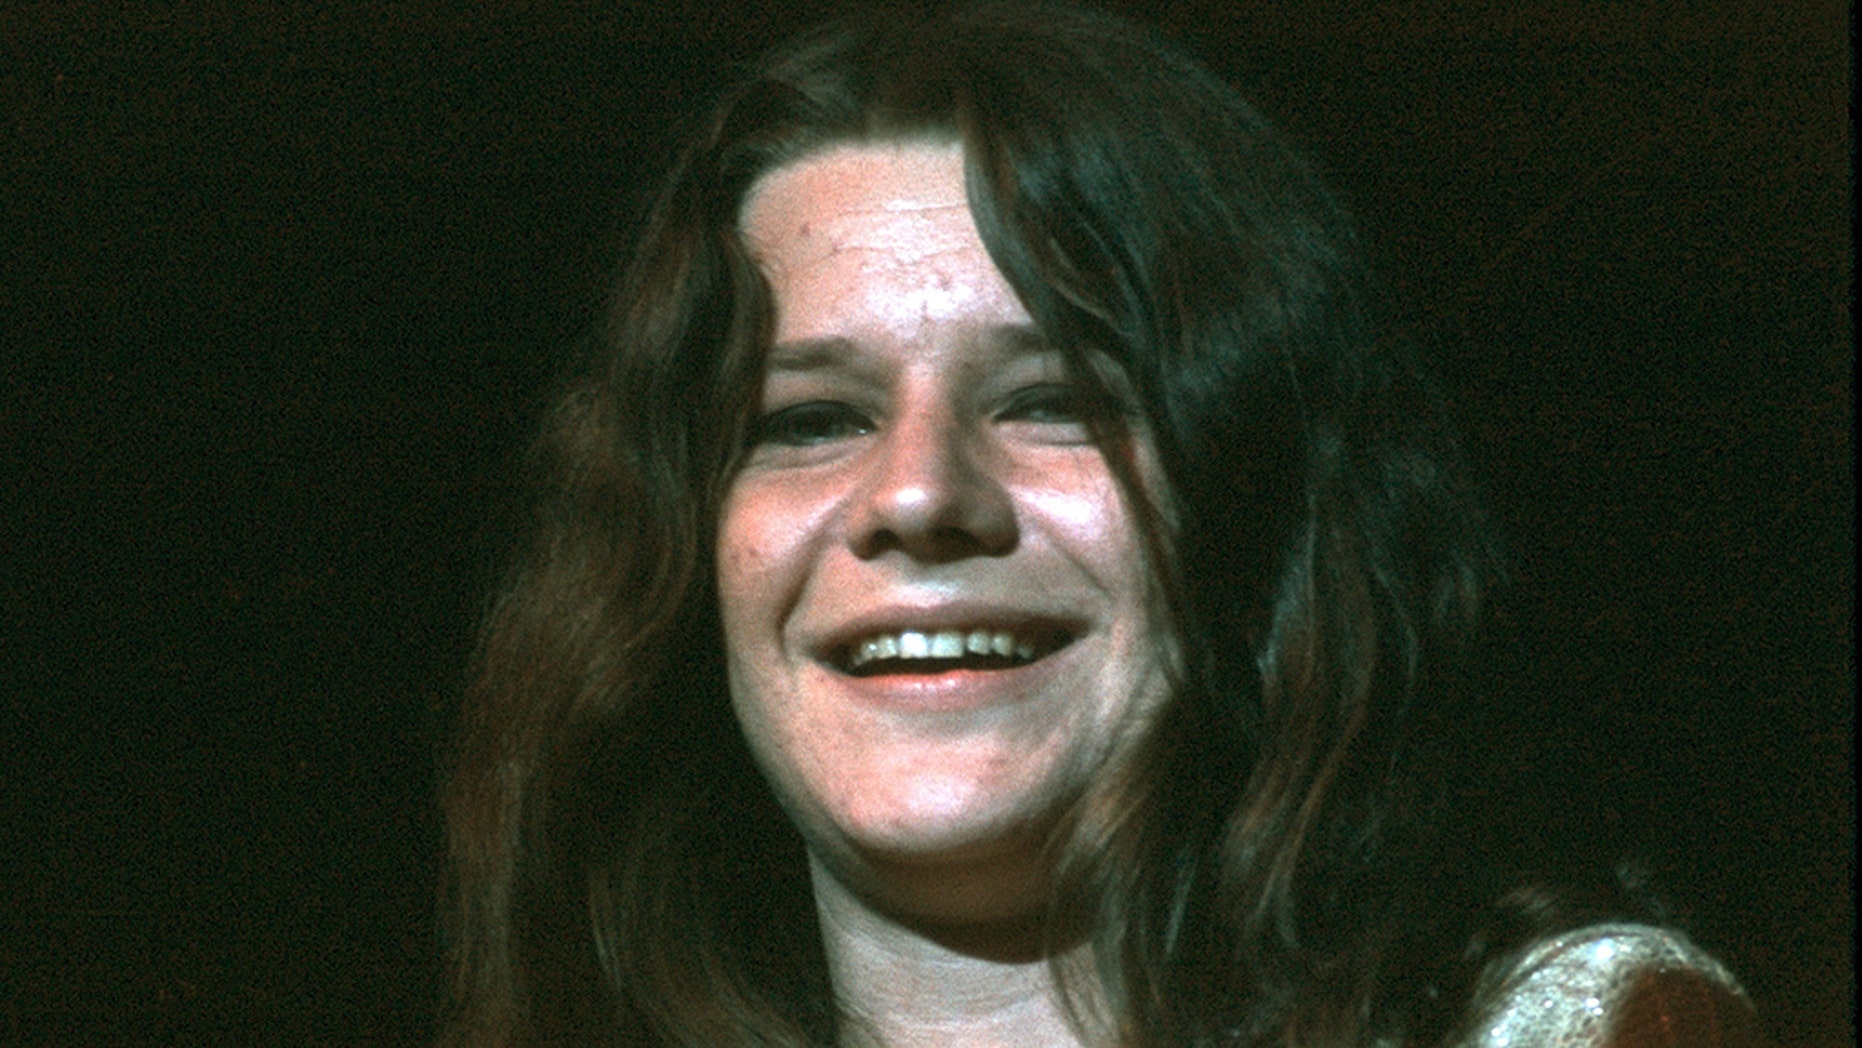 Janis Joplin died of a drug overdose in Los Angeles at age 27.